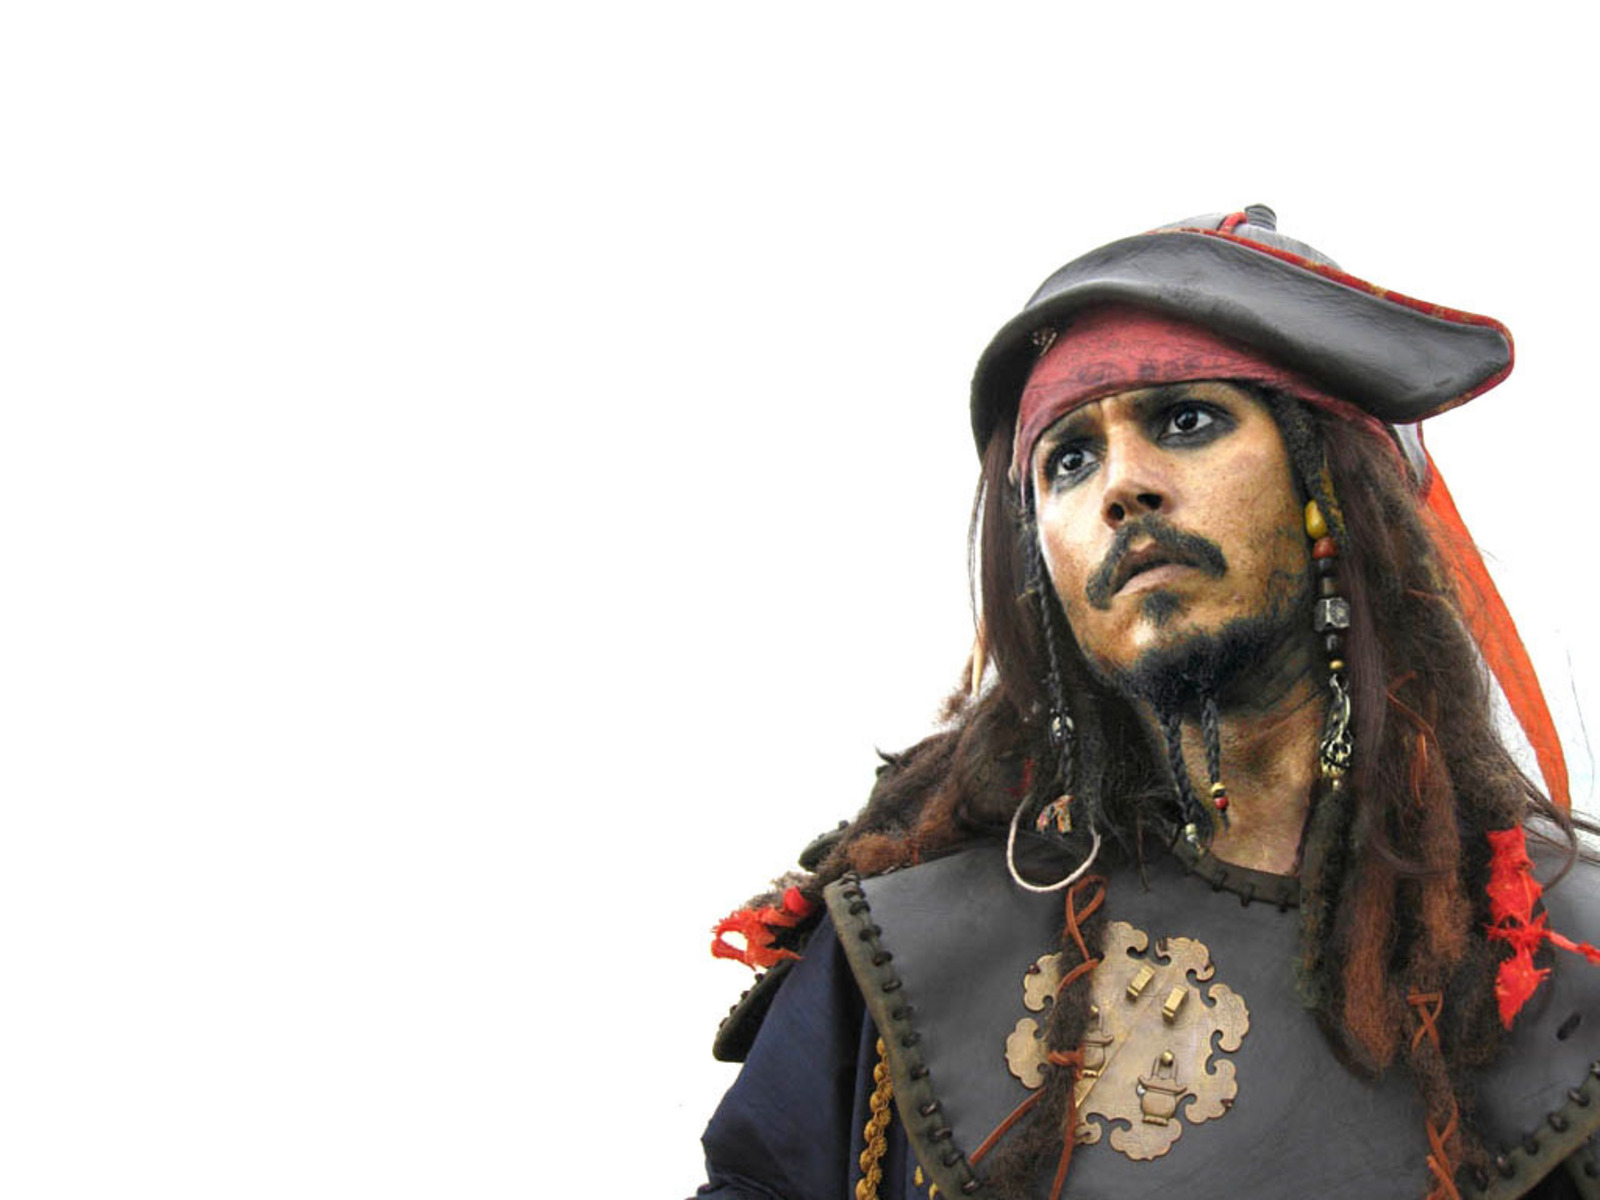 Pirates of the caribbean wallpapers desktop wallpaper free amazing wallpapers - Pirates of the caribbean images hd ...